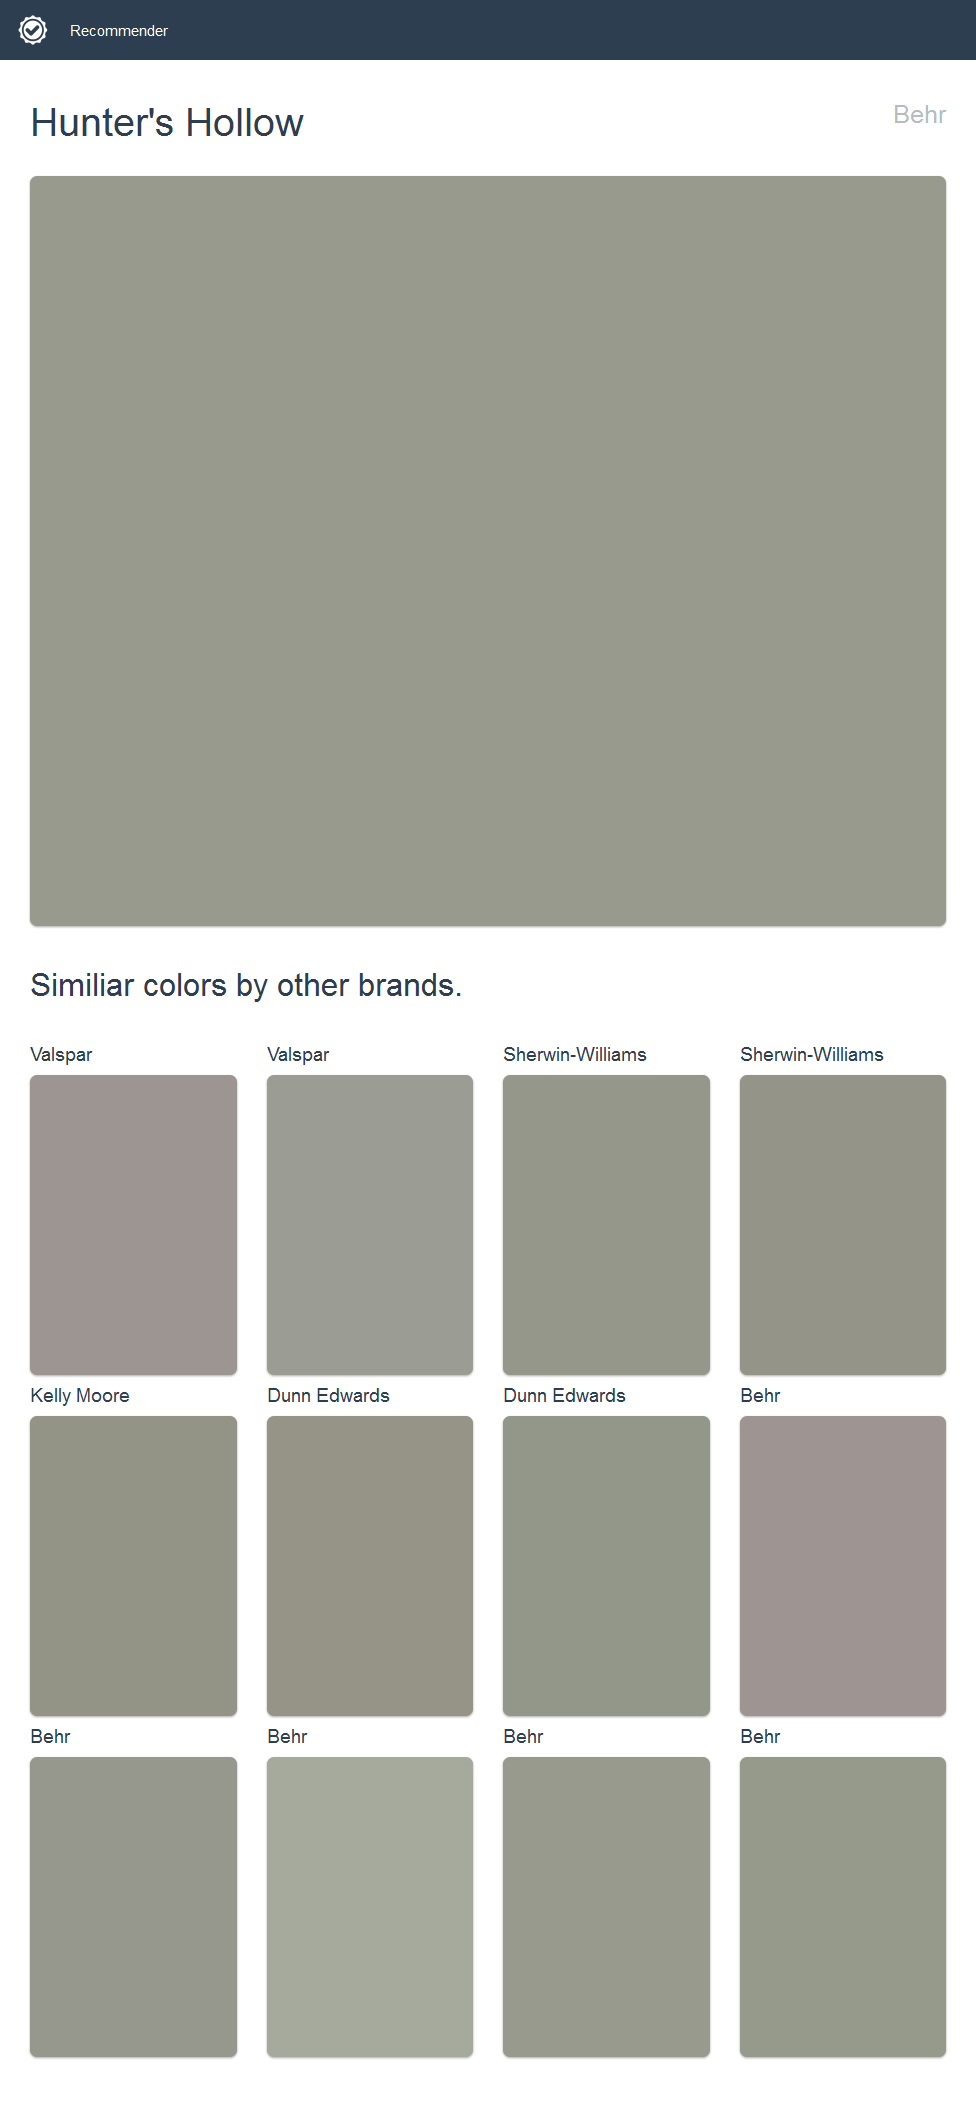 Hunteru0027s Hollow, Behr. Click The Image To See Similiar Colors By Other  Brands.